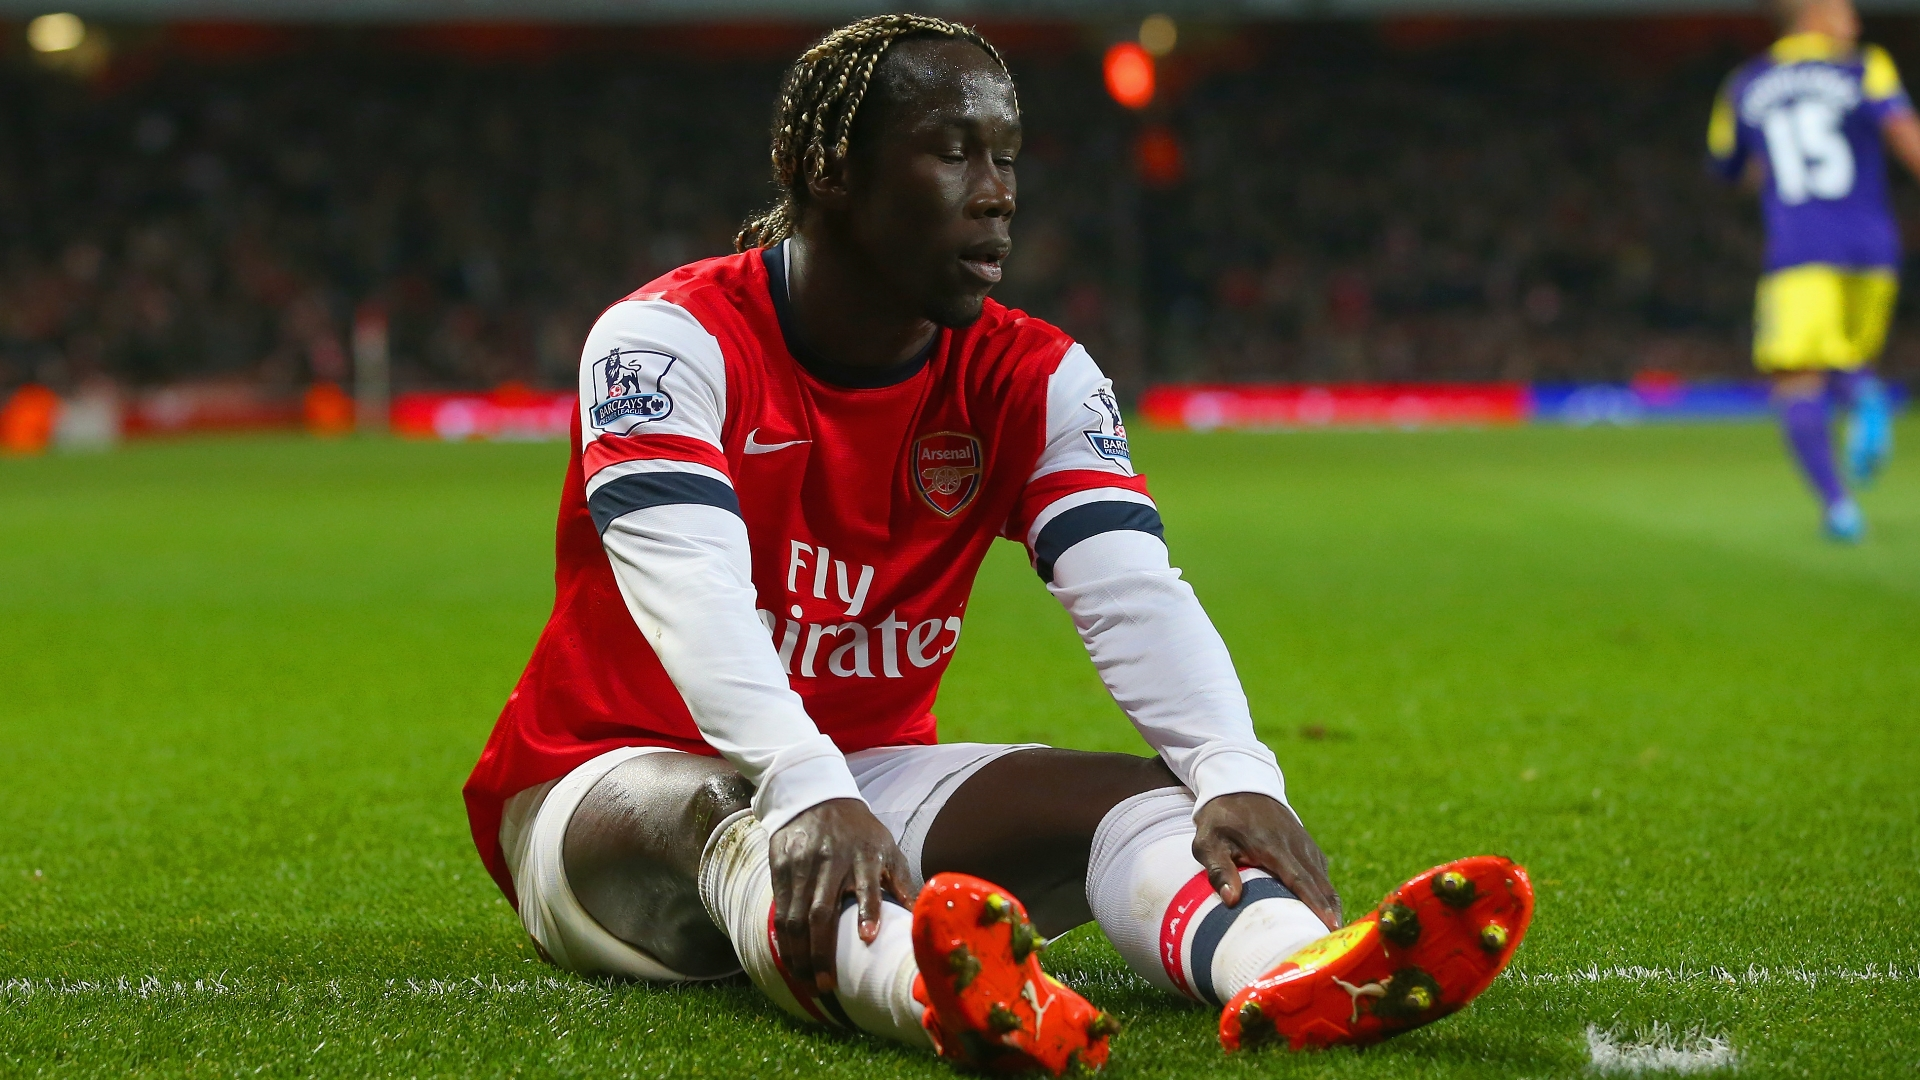 'The DNA of the club is gone' – Sagna rips former club Arsenal after Chelsea defeat